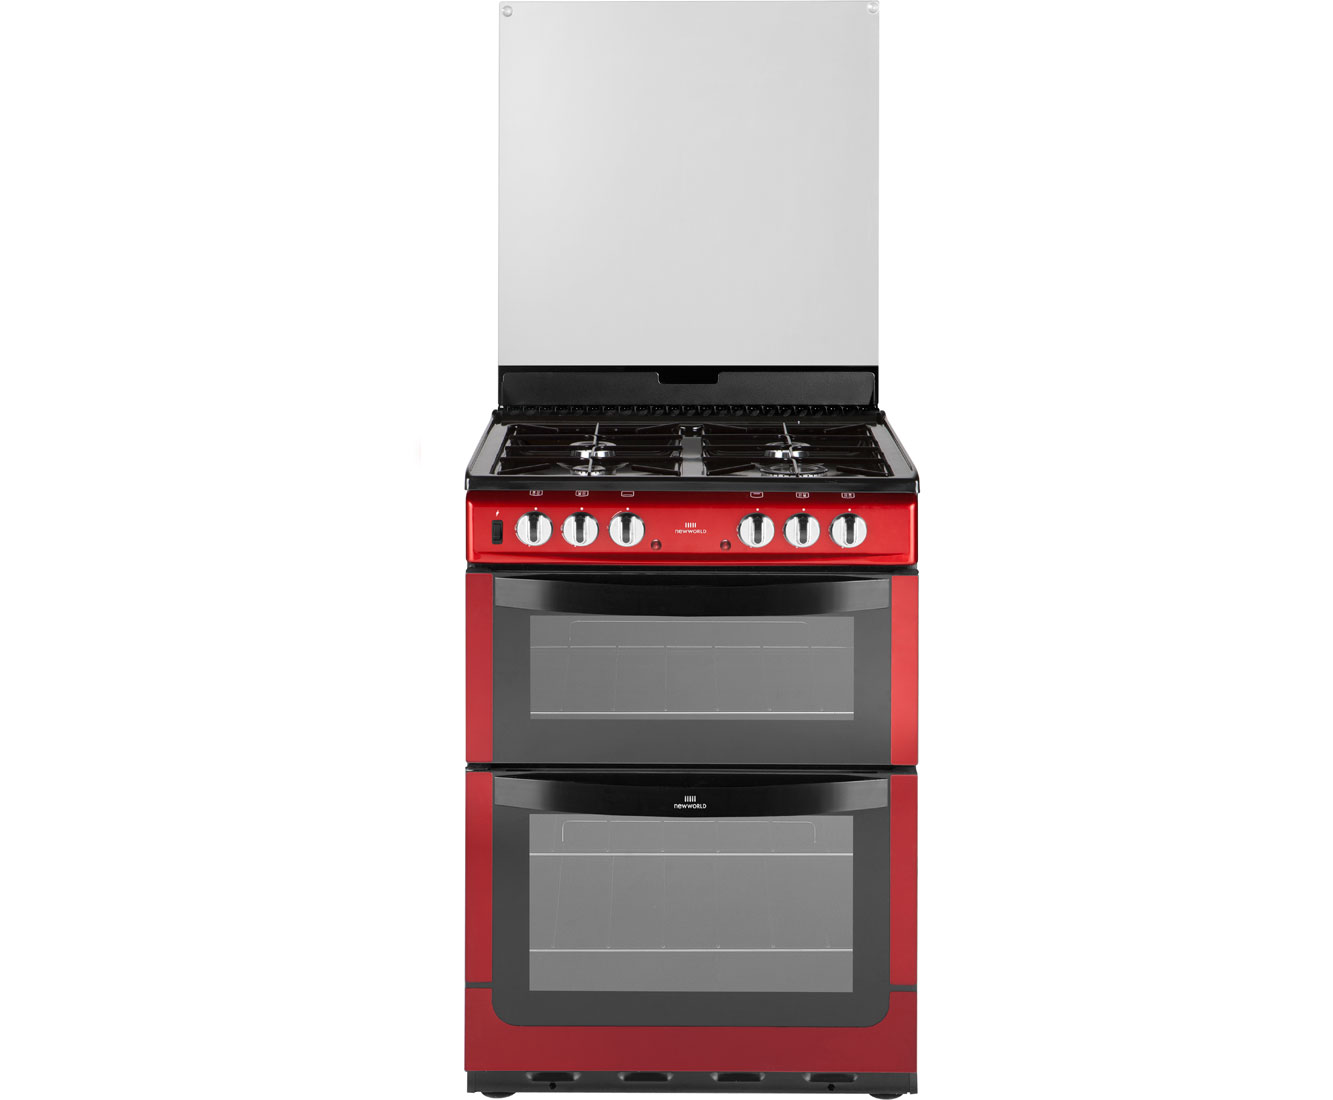 Newworld NW601DFDOL Dual Fuel Cooker - Red